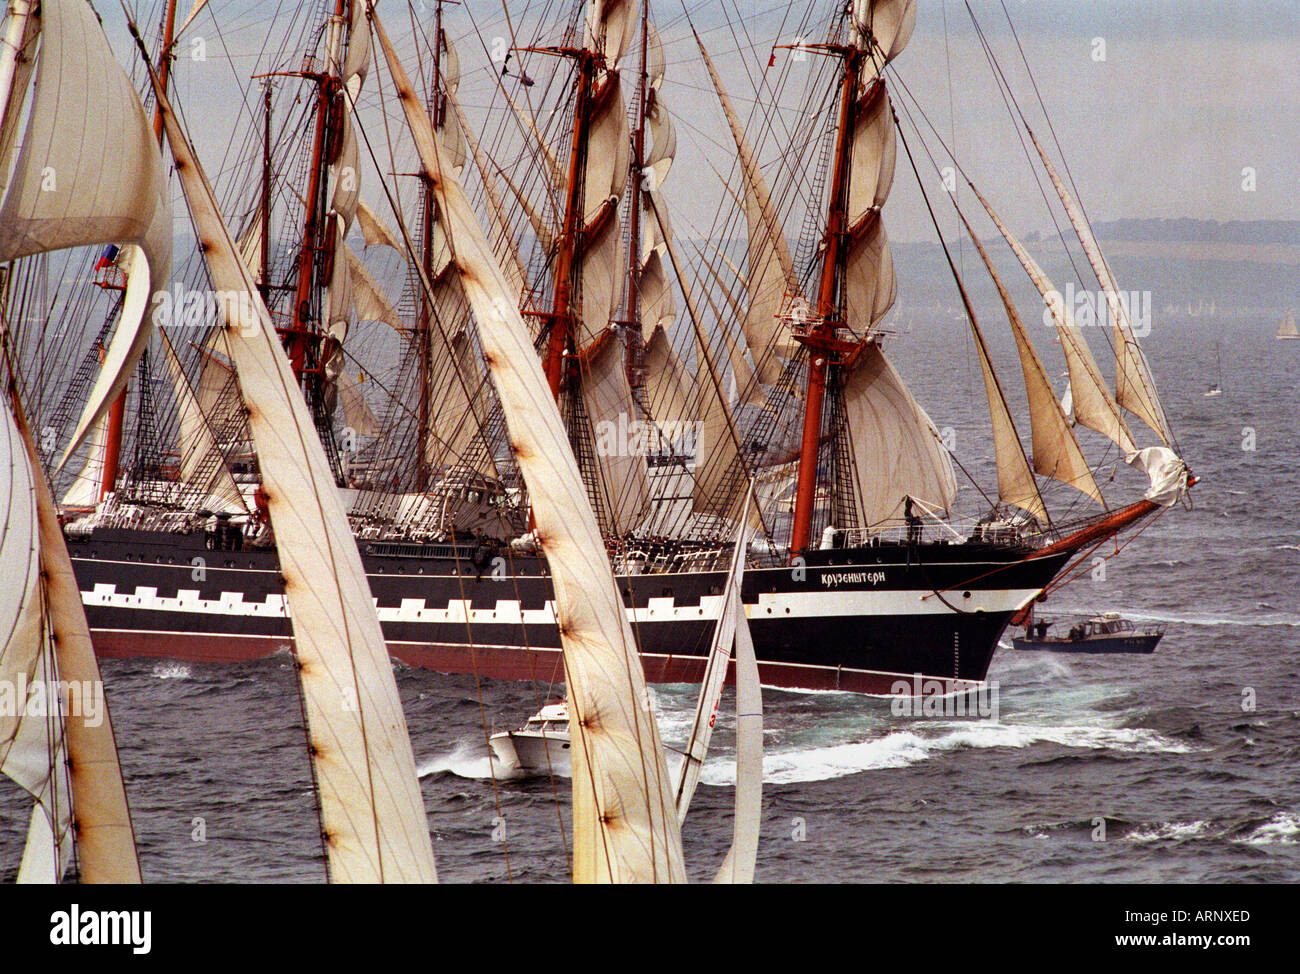 Tall ships race leaves Falmouth in Cornwall UK - Stock Image